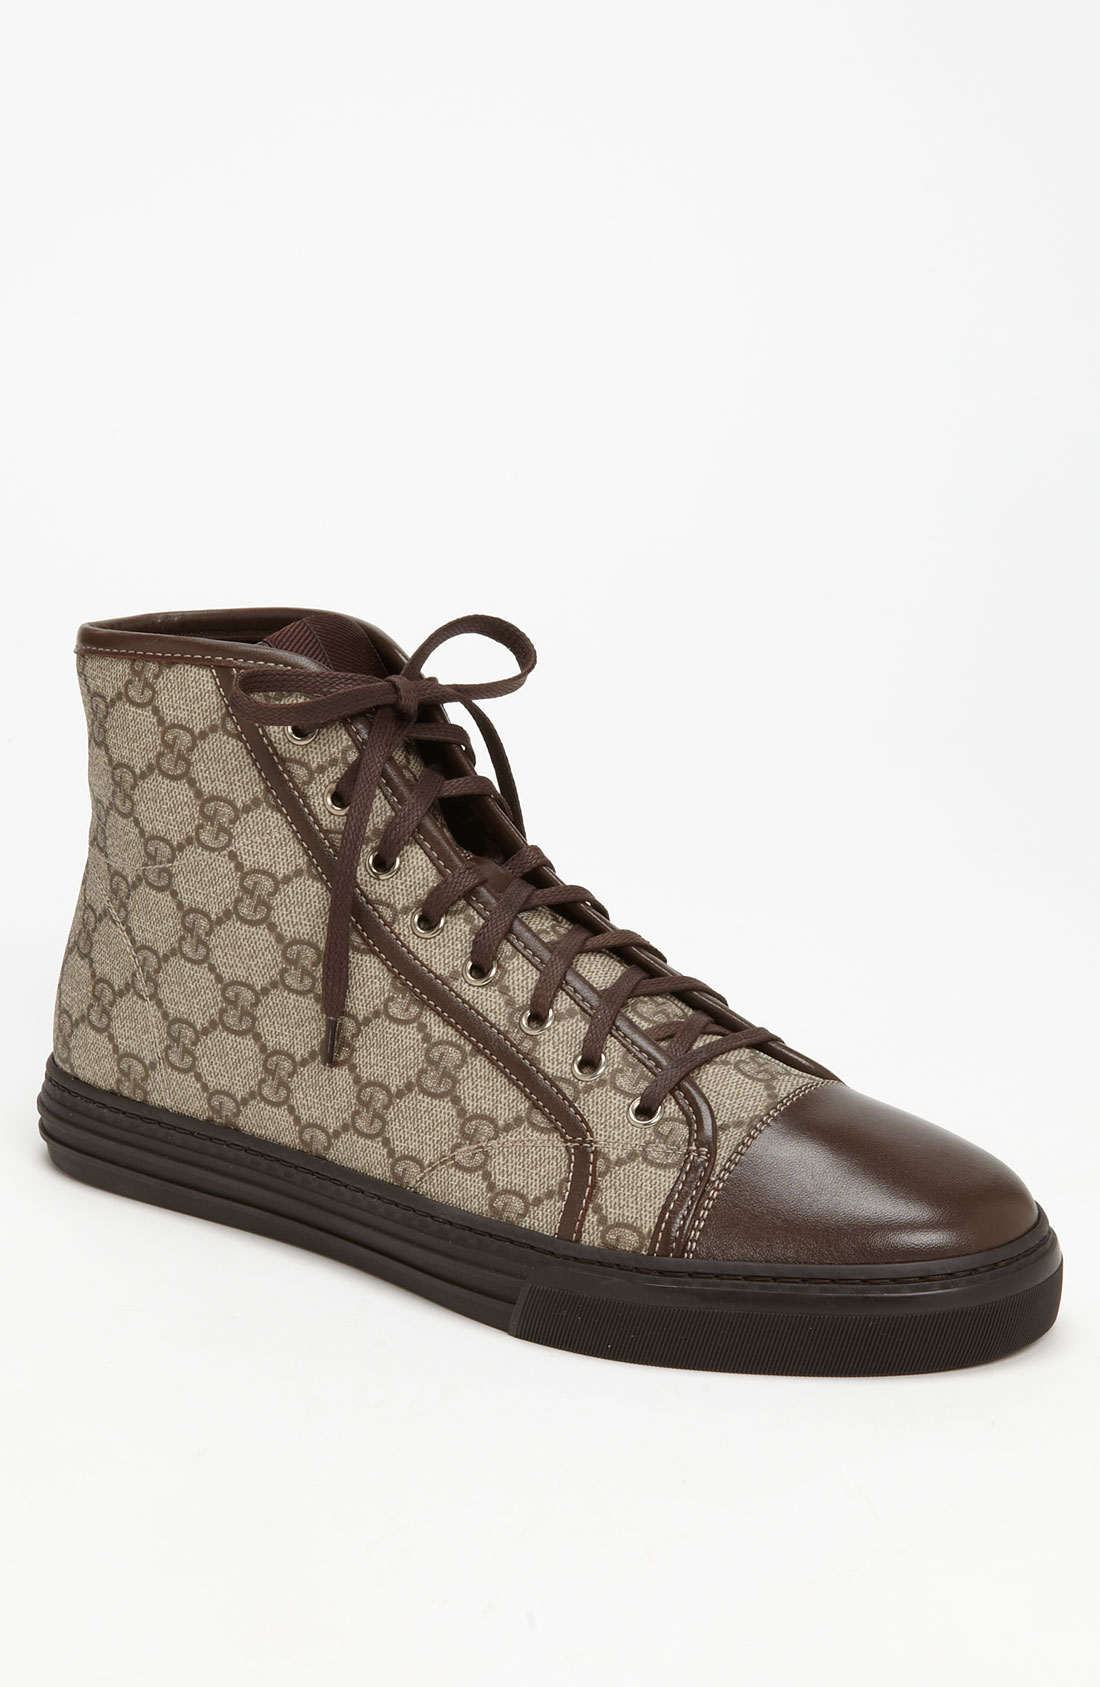 Mens Brown Gucci Shoes